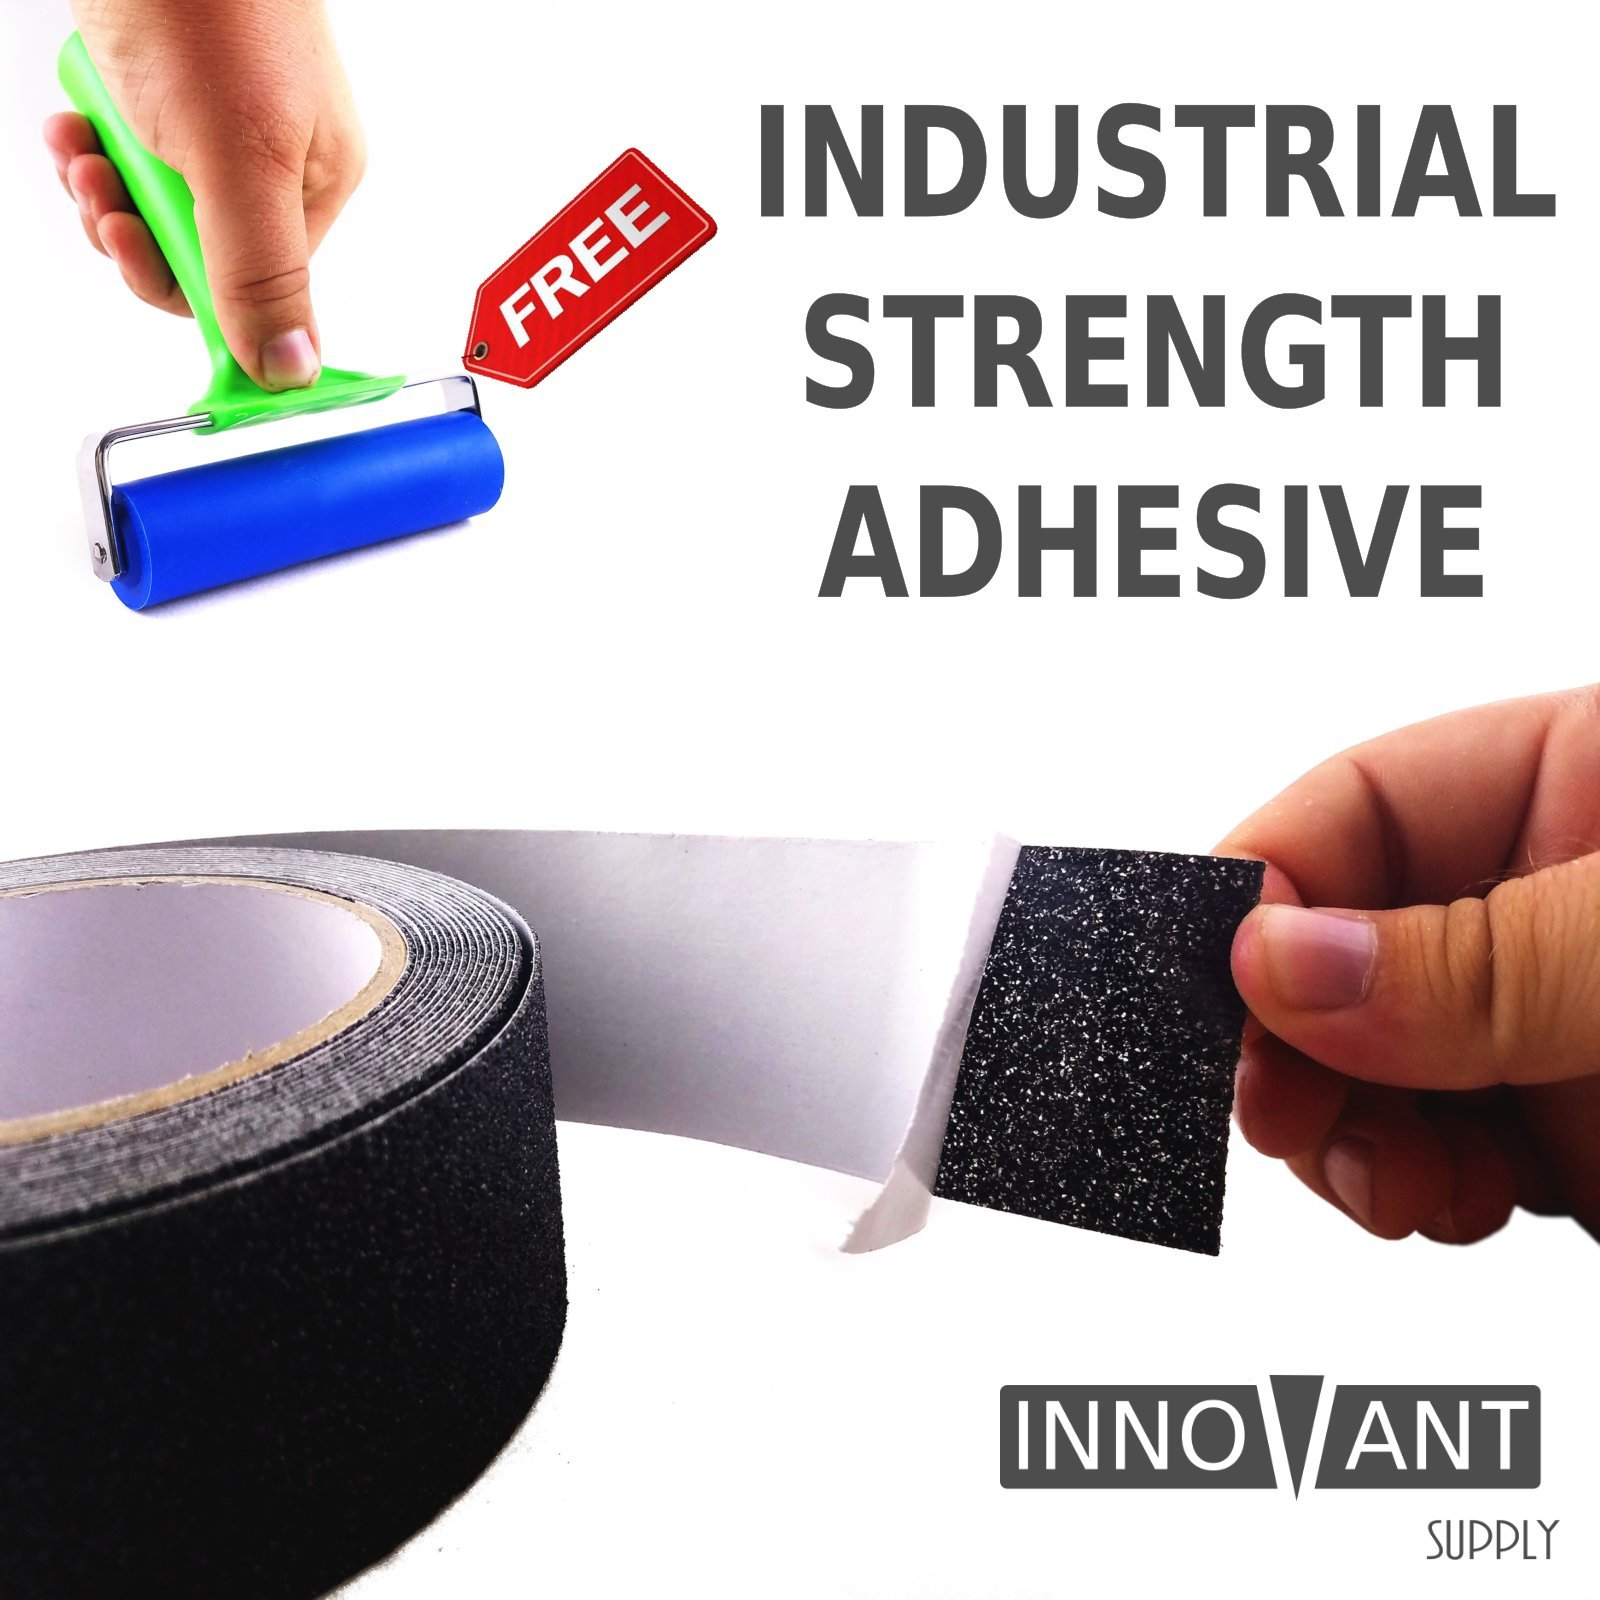 INNOVANT SUPPLY Anti-Slip Tape - Indoor / Outdoor Safety Grip Non-Slip Tape, Strong Friction Anti-Skid Grit Surface - Increase Grip on Stairs, Truck Beds, & Equipment - 4 inch x 16 foot (INDUSTRIAL)